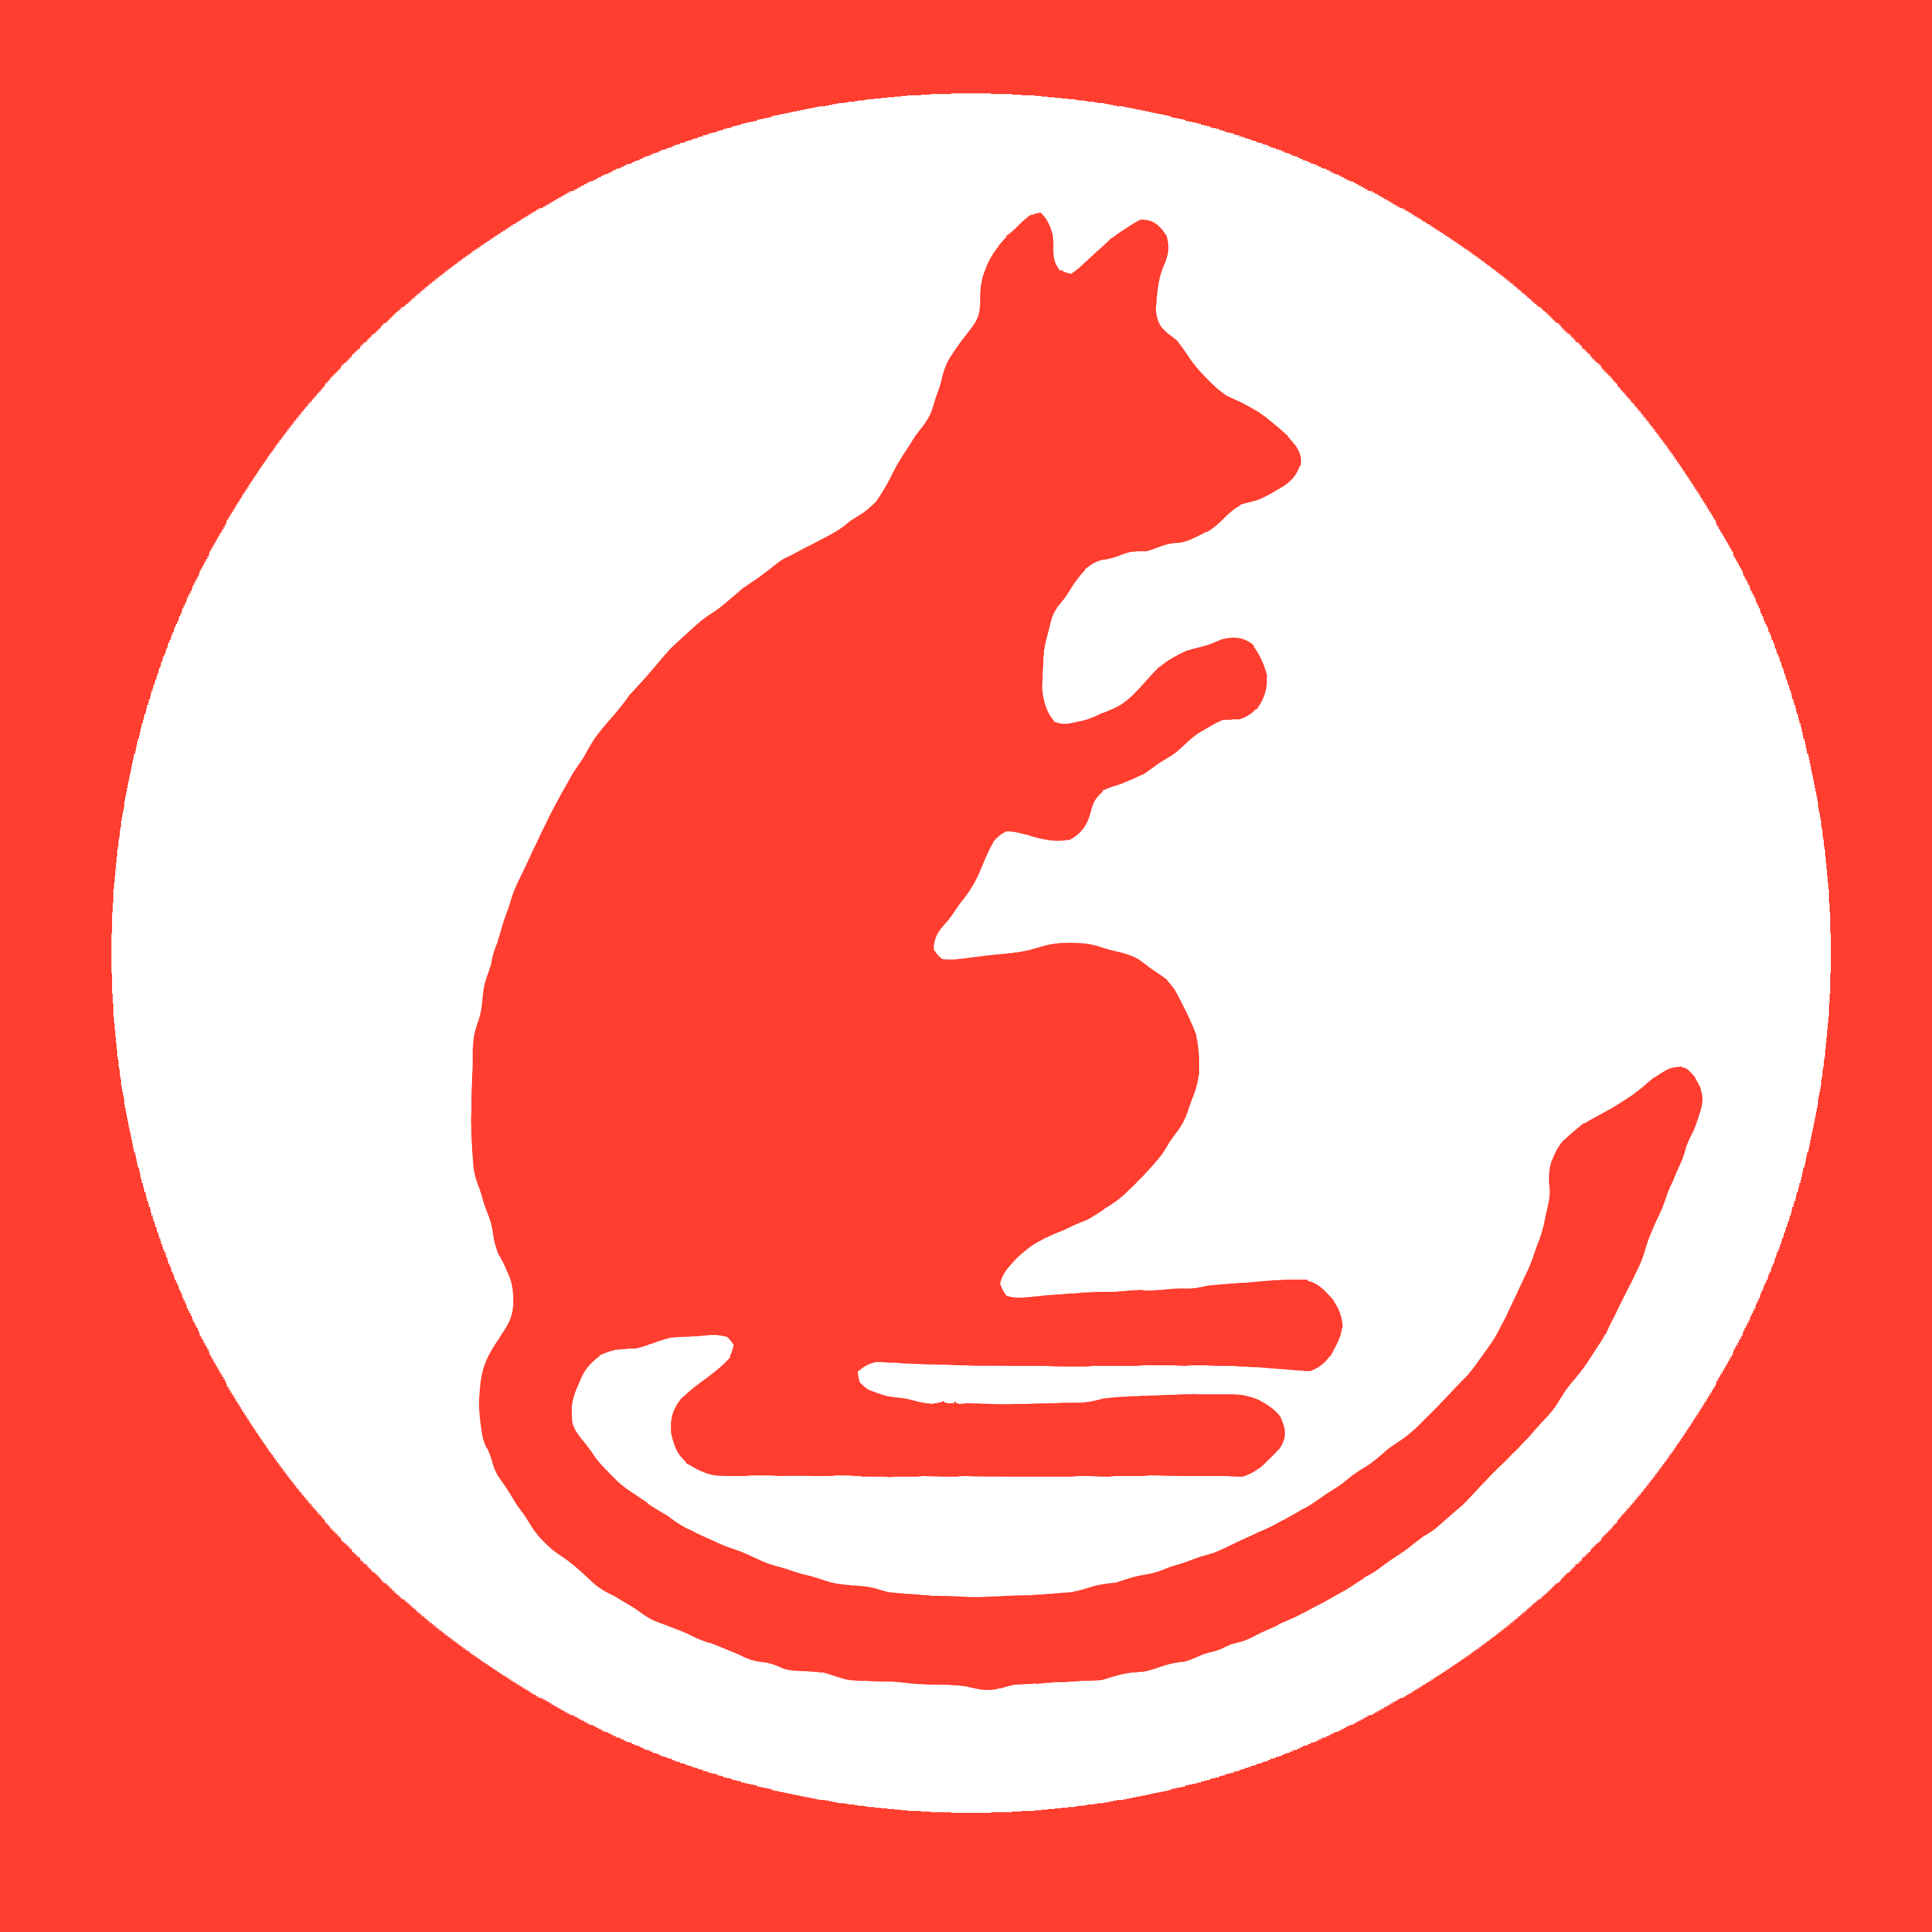 7th_armoured_division_insignia_1944_3000